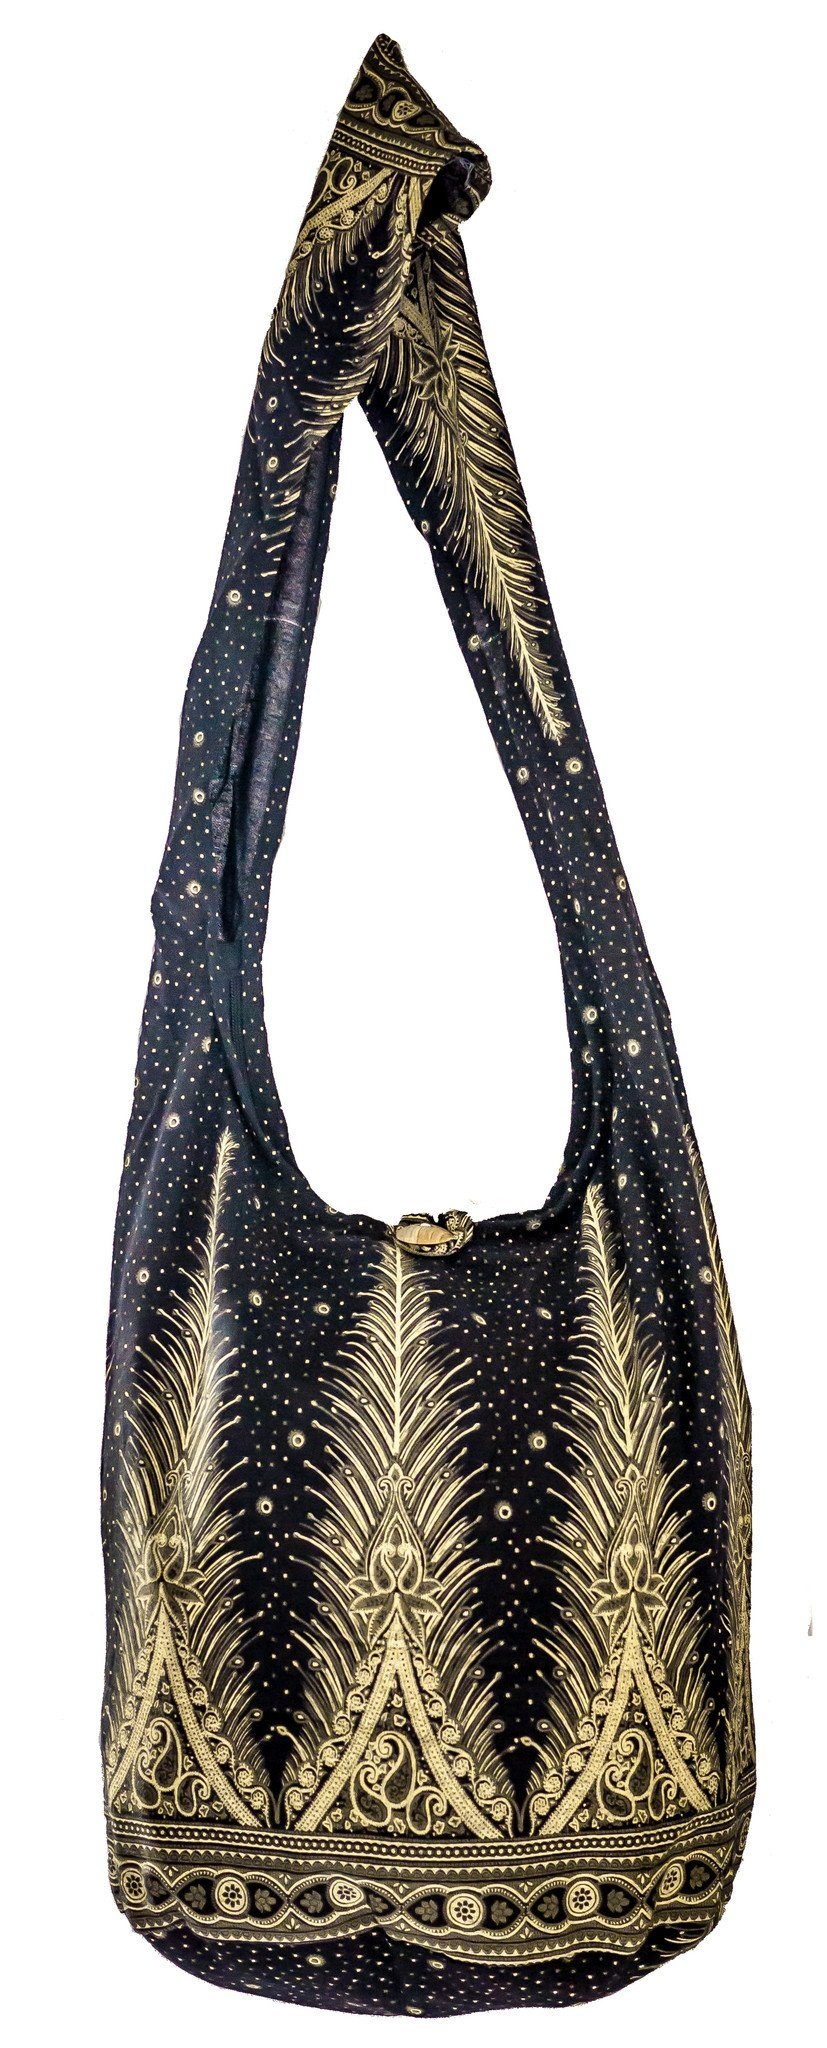 SLING GRAPHIC Feather Bag COTTON CROSS BODY bag LARGE BOHO hippie hobo - CCCollections